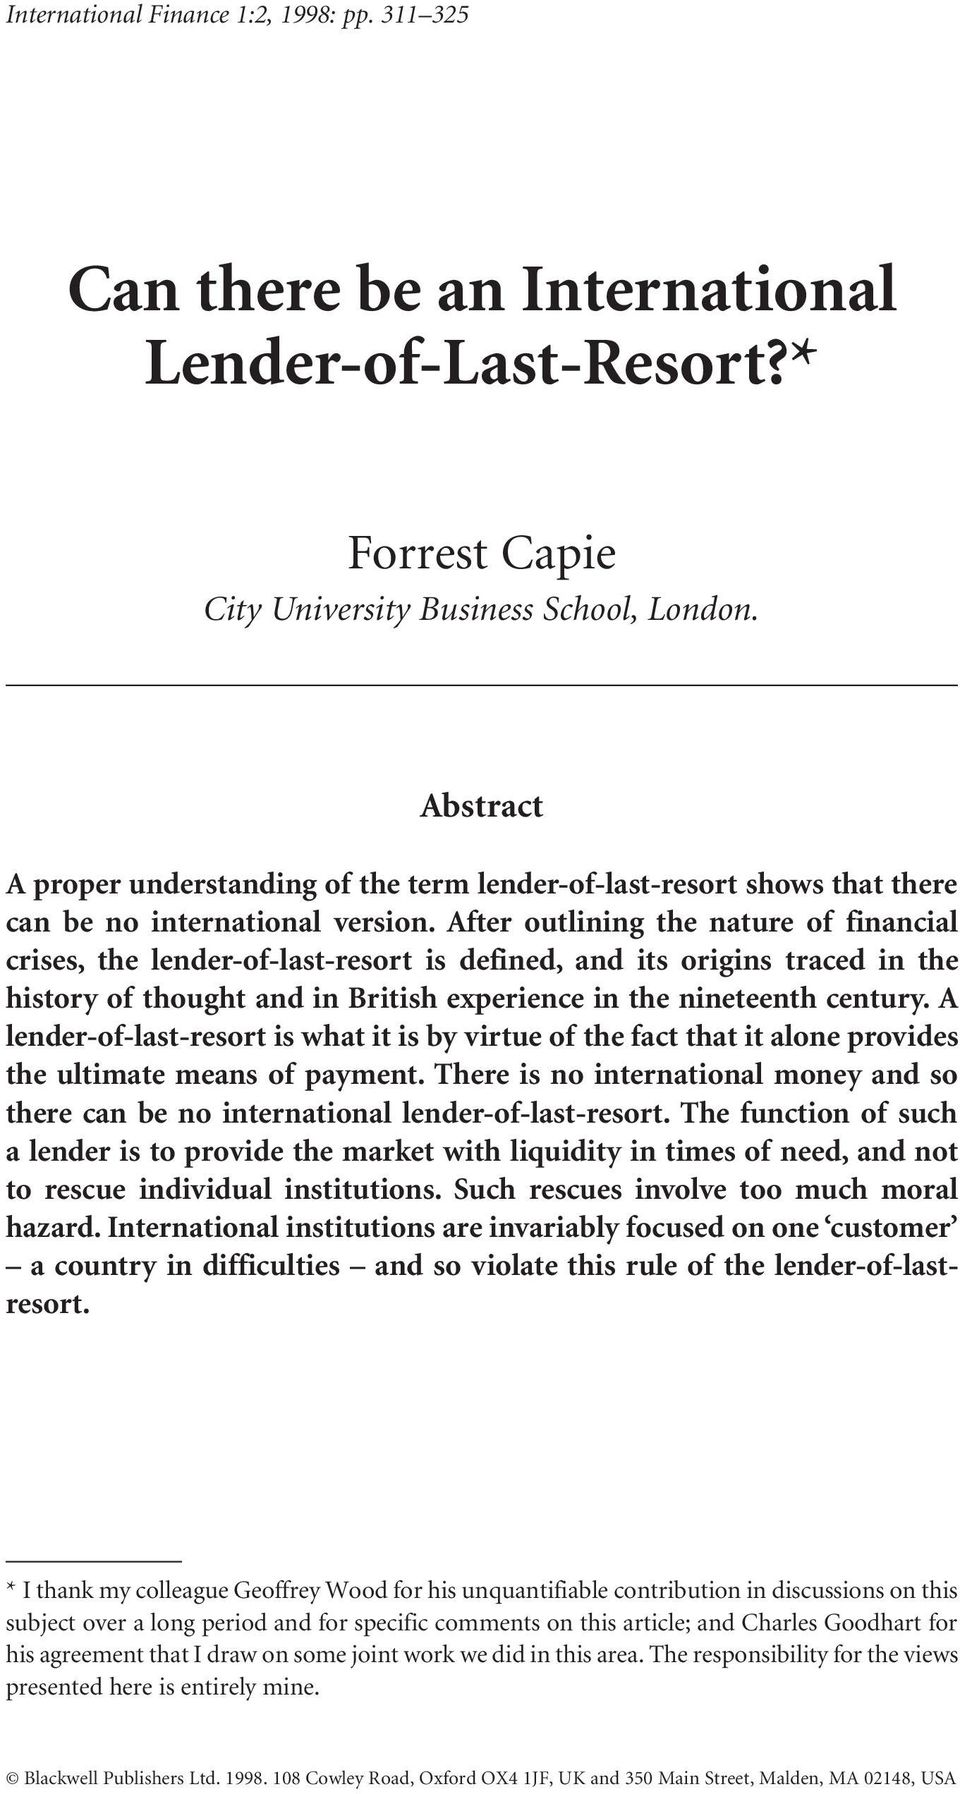 After outlining the nature of financial crises, the lender-of-last-resort is defined, and its origins traced in the history of thought and in British experience in the nineteenth century.